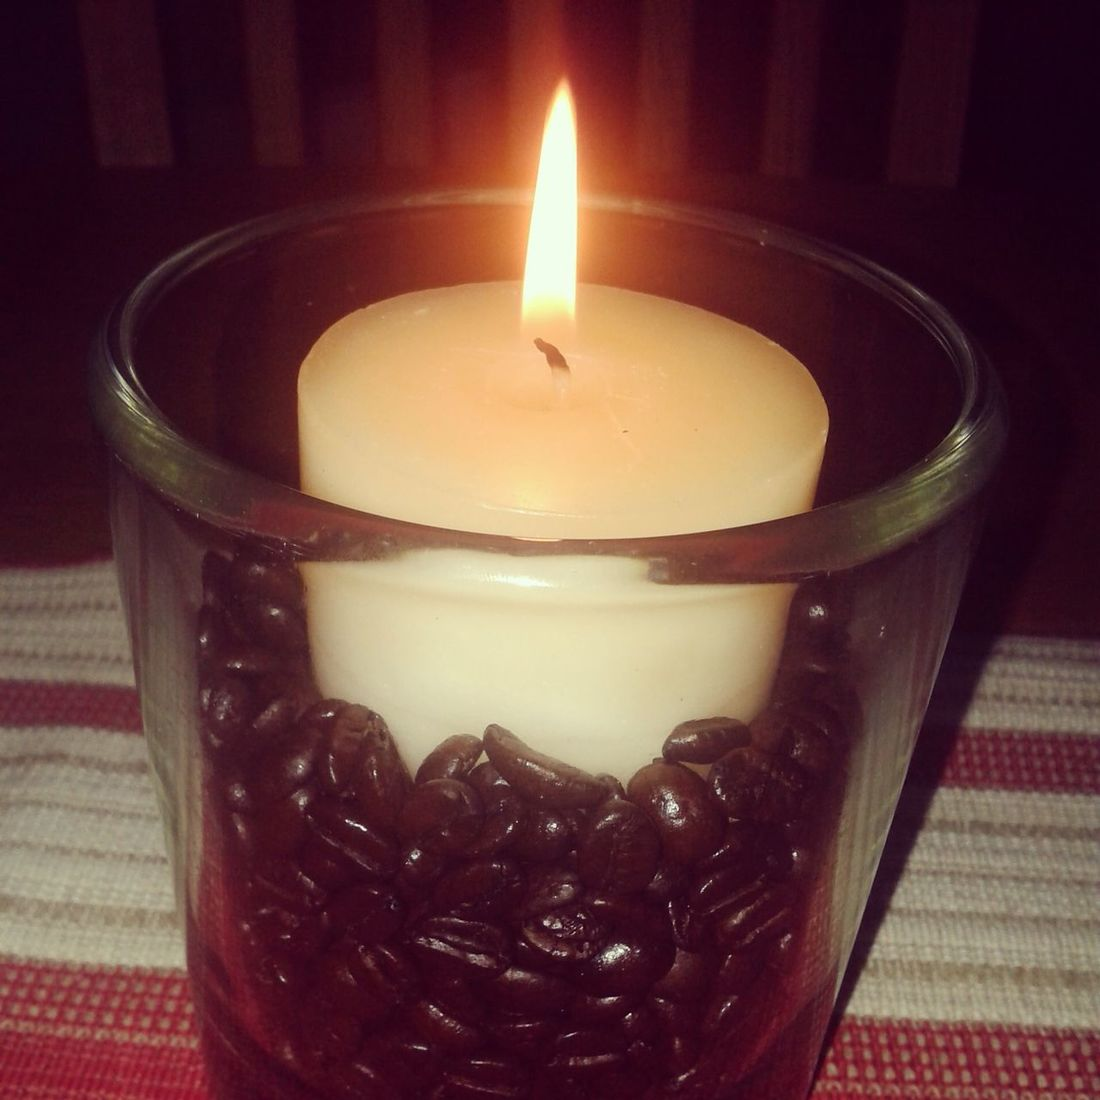 Lit a vanilla candle to calm me down, while I was stressing out. Helped a little bit. Candle Home Cozy Keep Calm